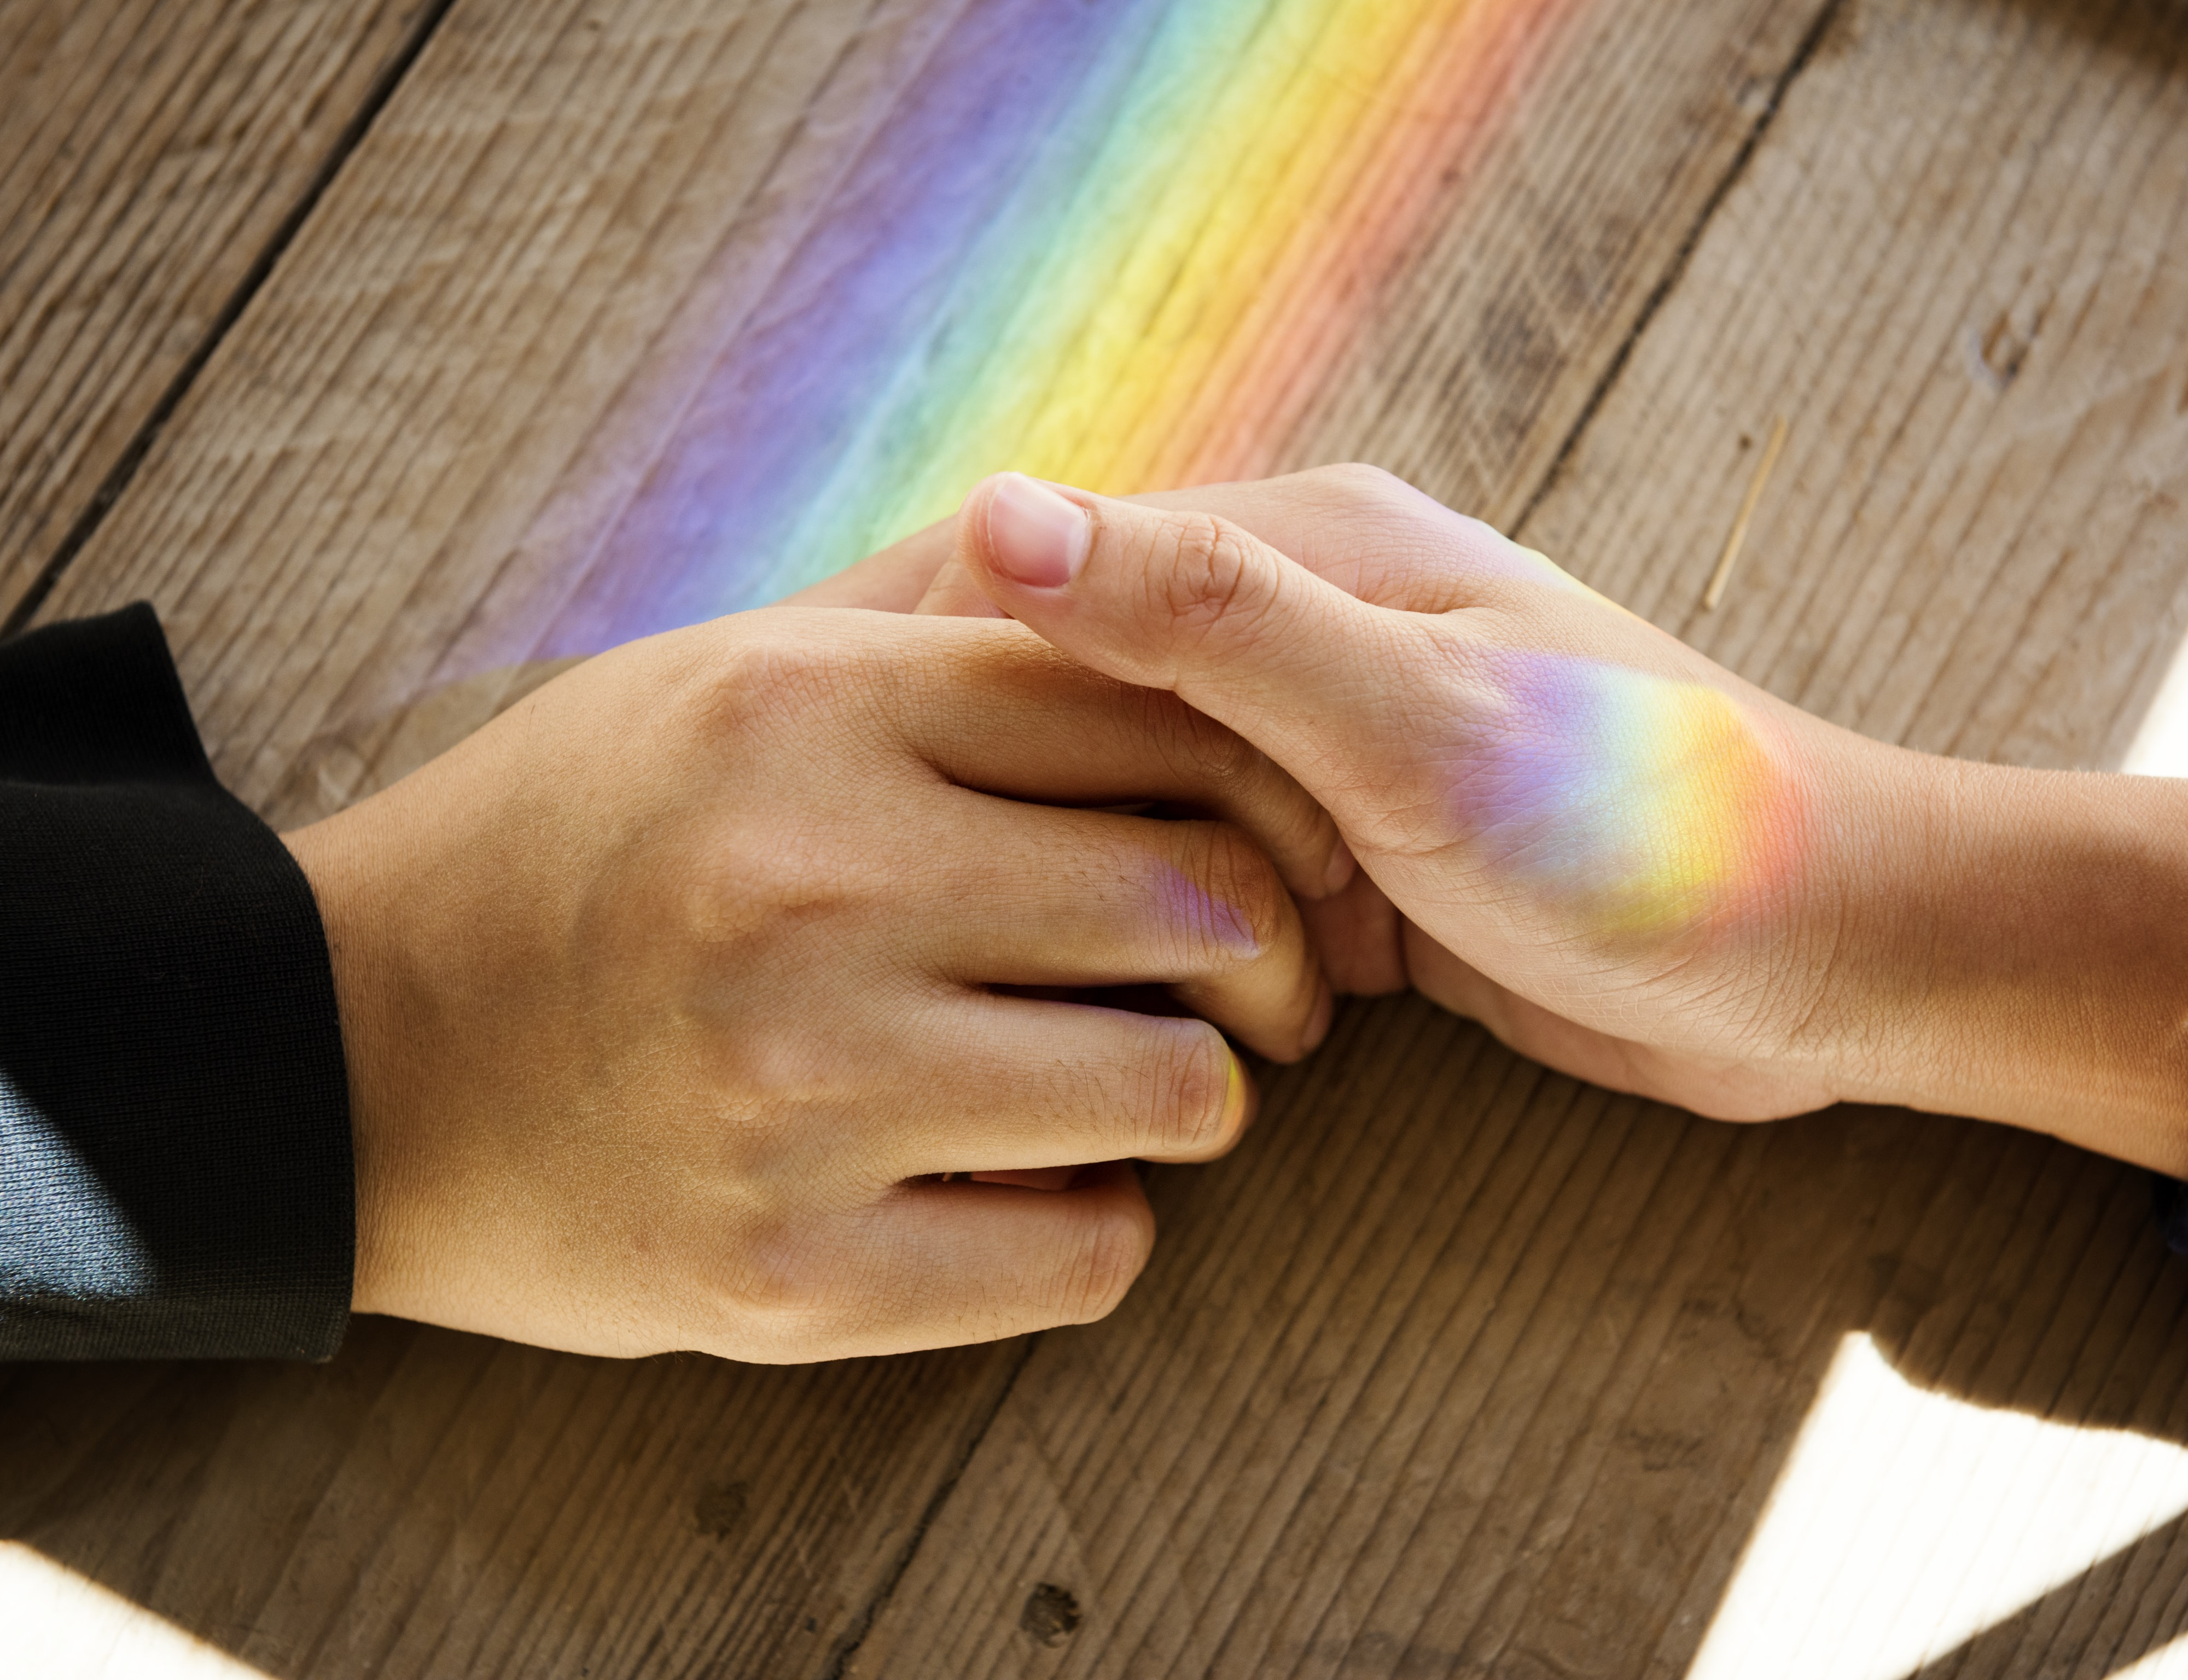 two holding hands on table with rainbow